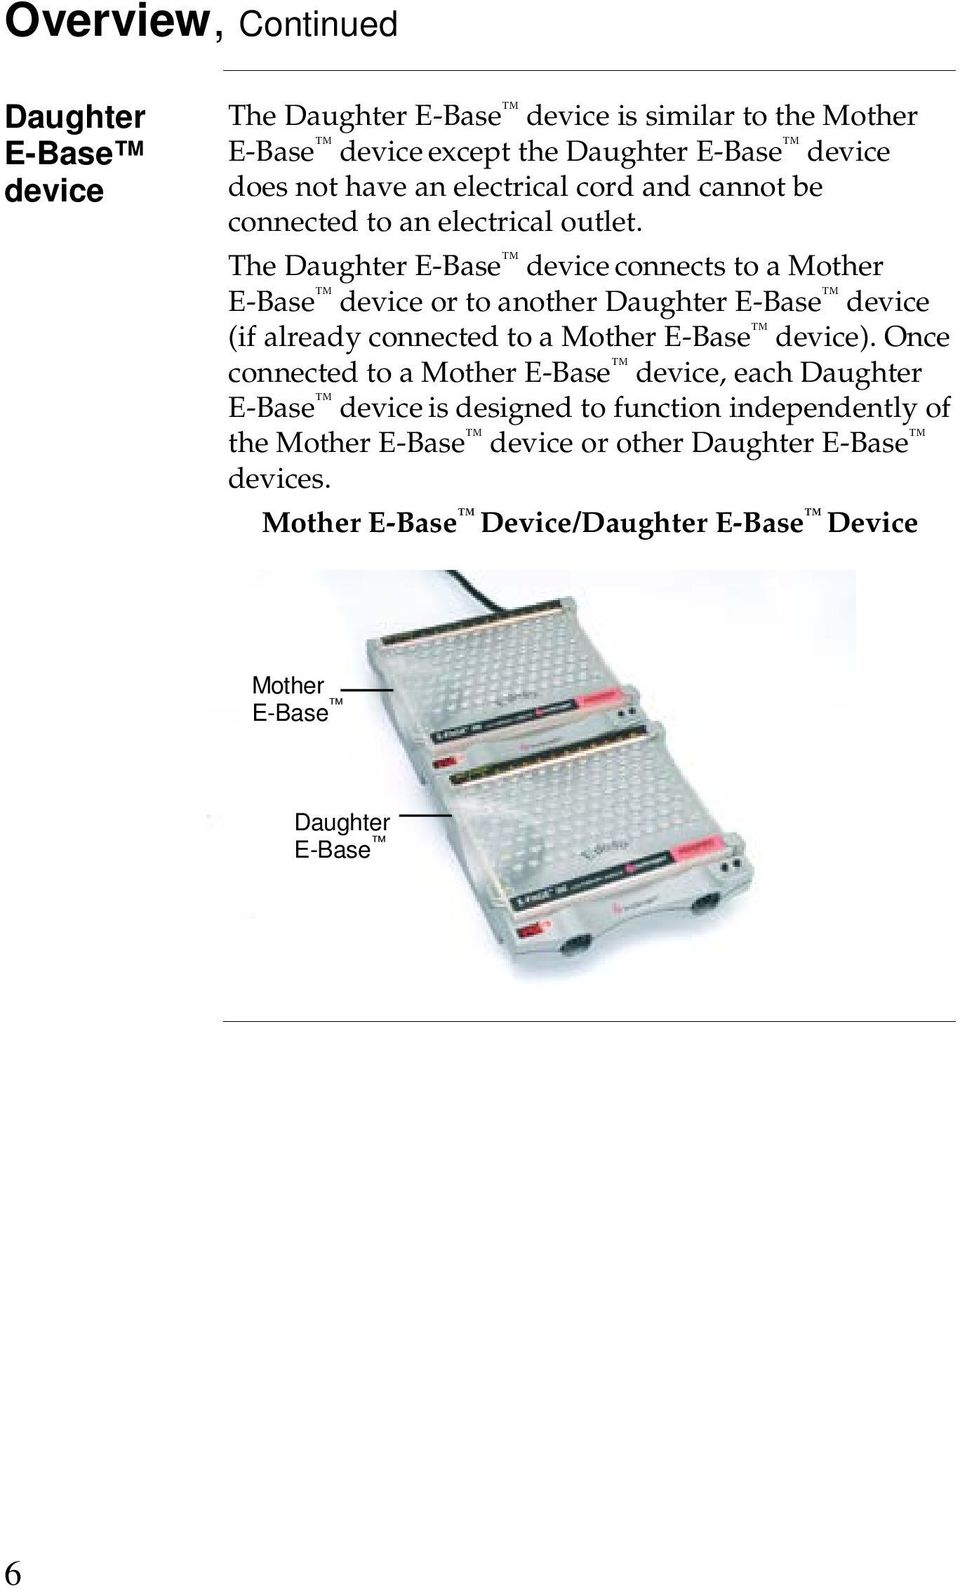 The Daughter E-Base device connects to a Mother E-Base device or to another Daughter E-Base device (if already connected to a Mother E-Base device).